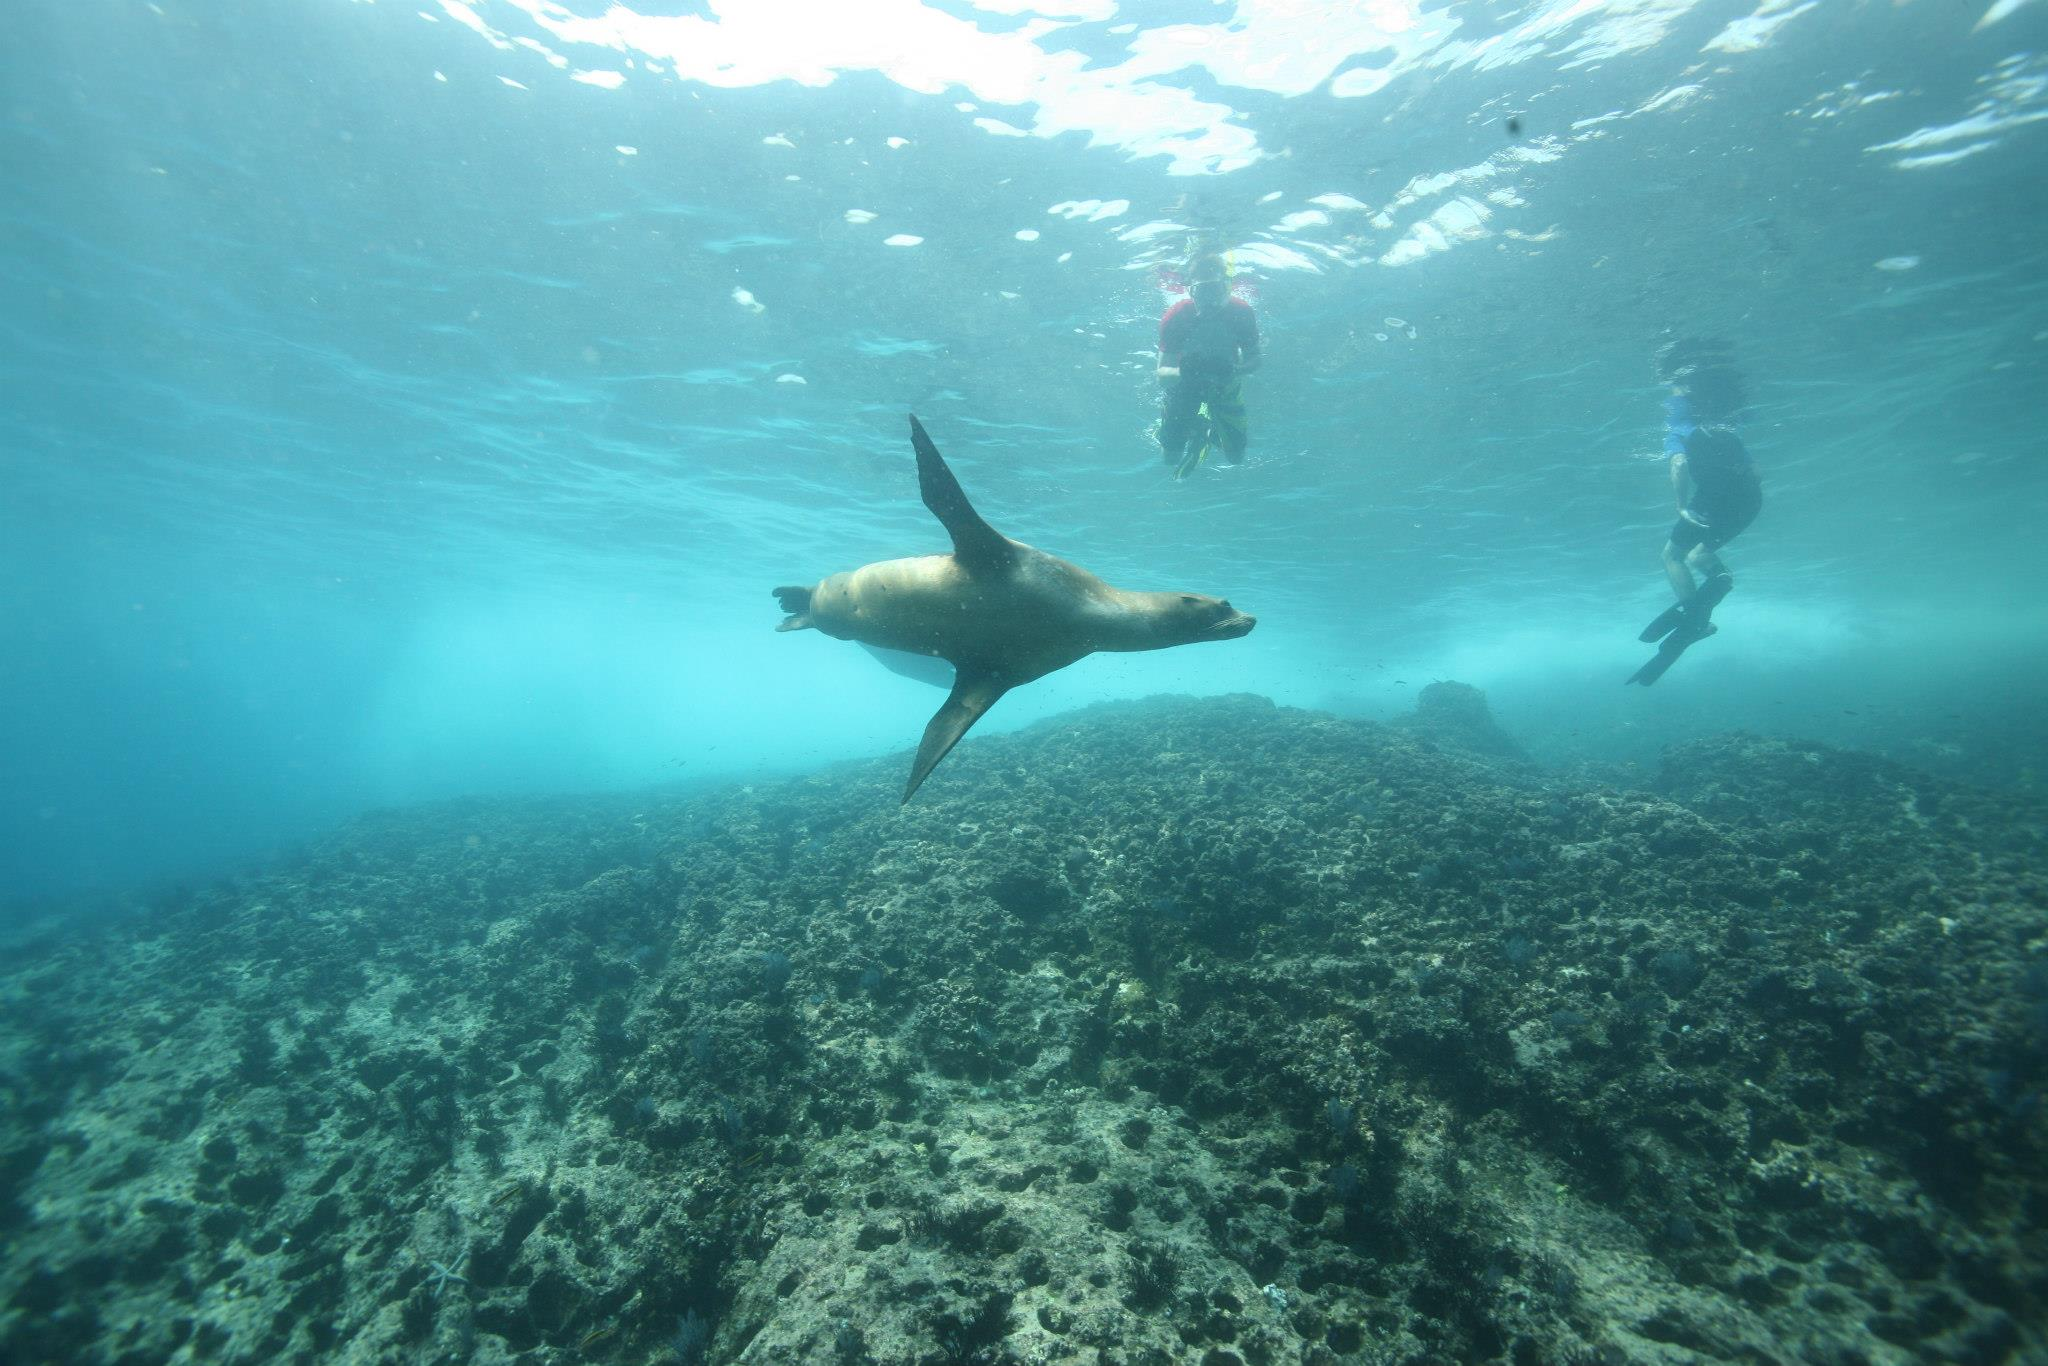 Safely swim with charismatic marine species like seals, sea lions, whales, and dolphins.